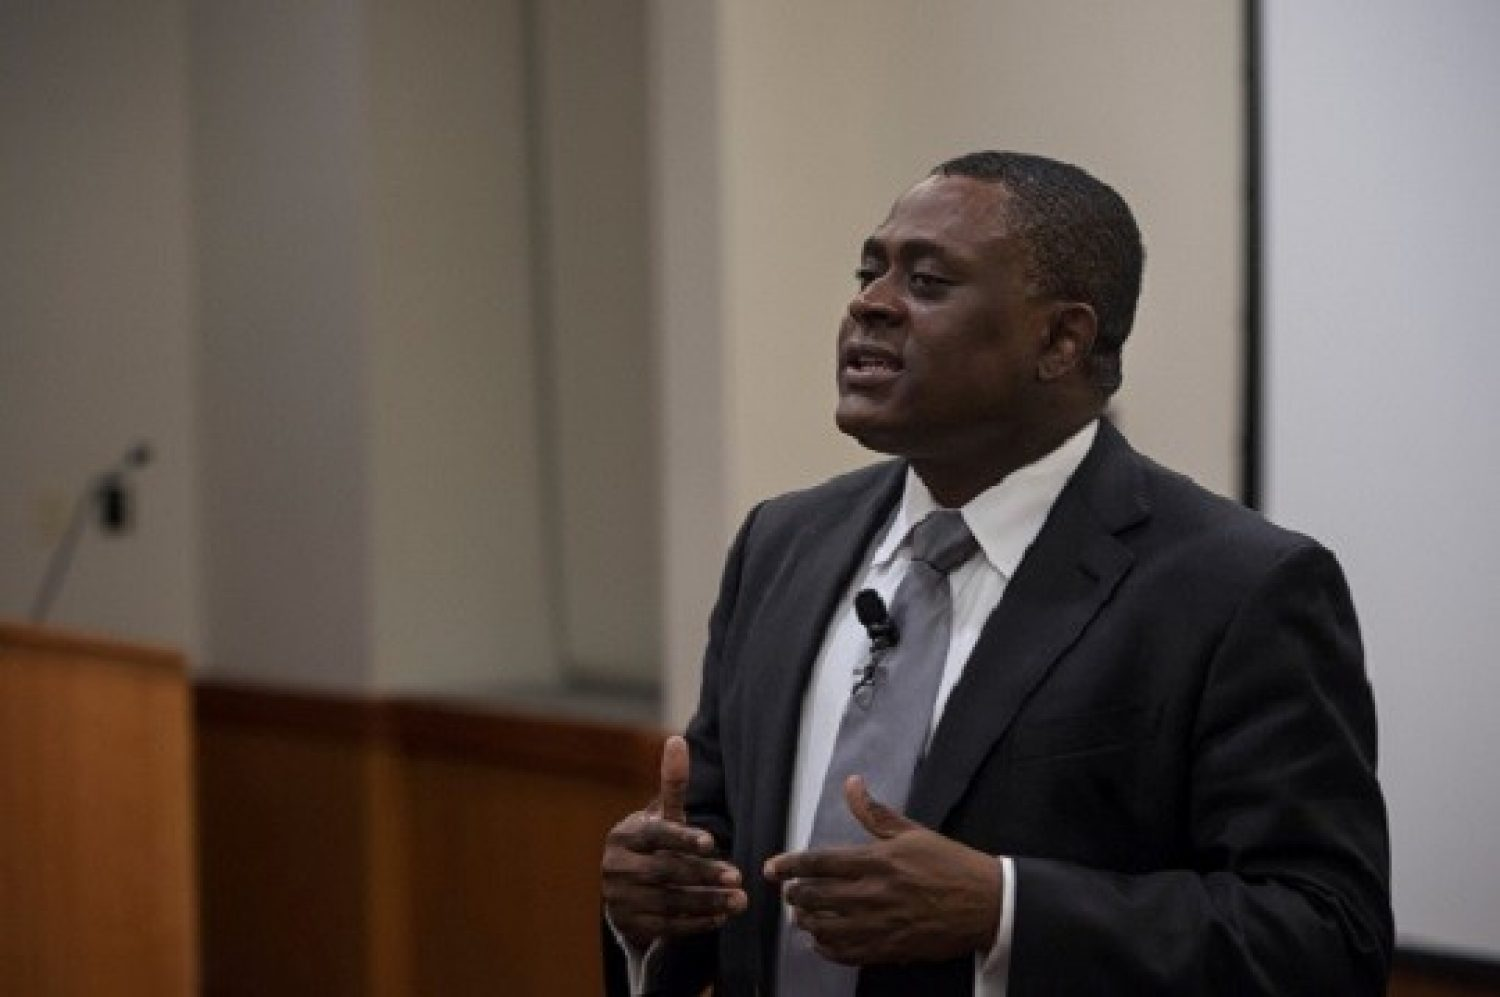 Spring 2017: Dr. Bennet Omalu, Neuropathologist and CTE Expert